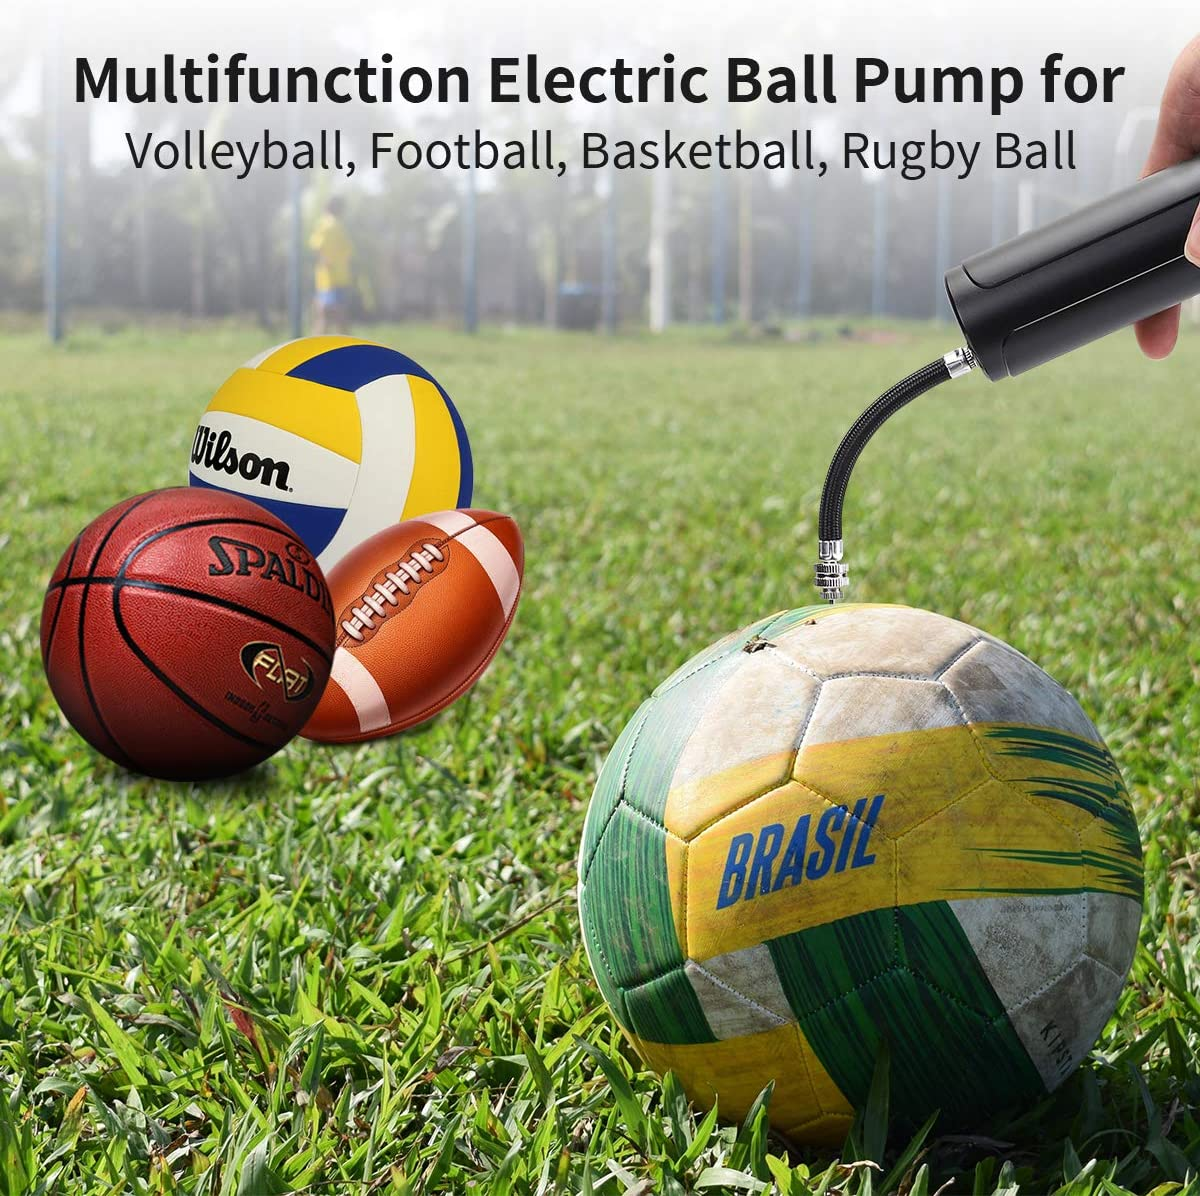 Automatic Fast Air Pump for Inflatables Soccer Multifunctional Ball Pump for Athletic Basketball Football and Rugby Ball Keenstone Electric Ball Pump with Needle Volleyball